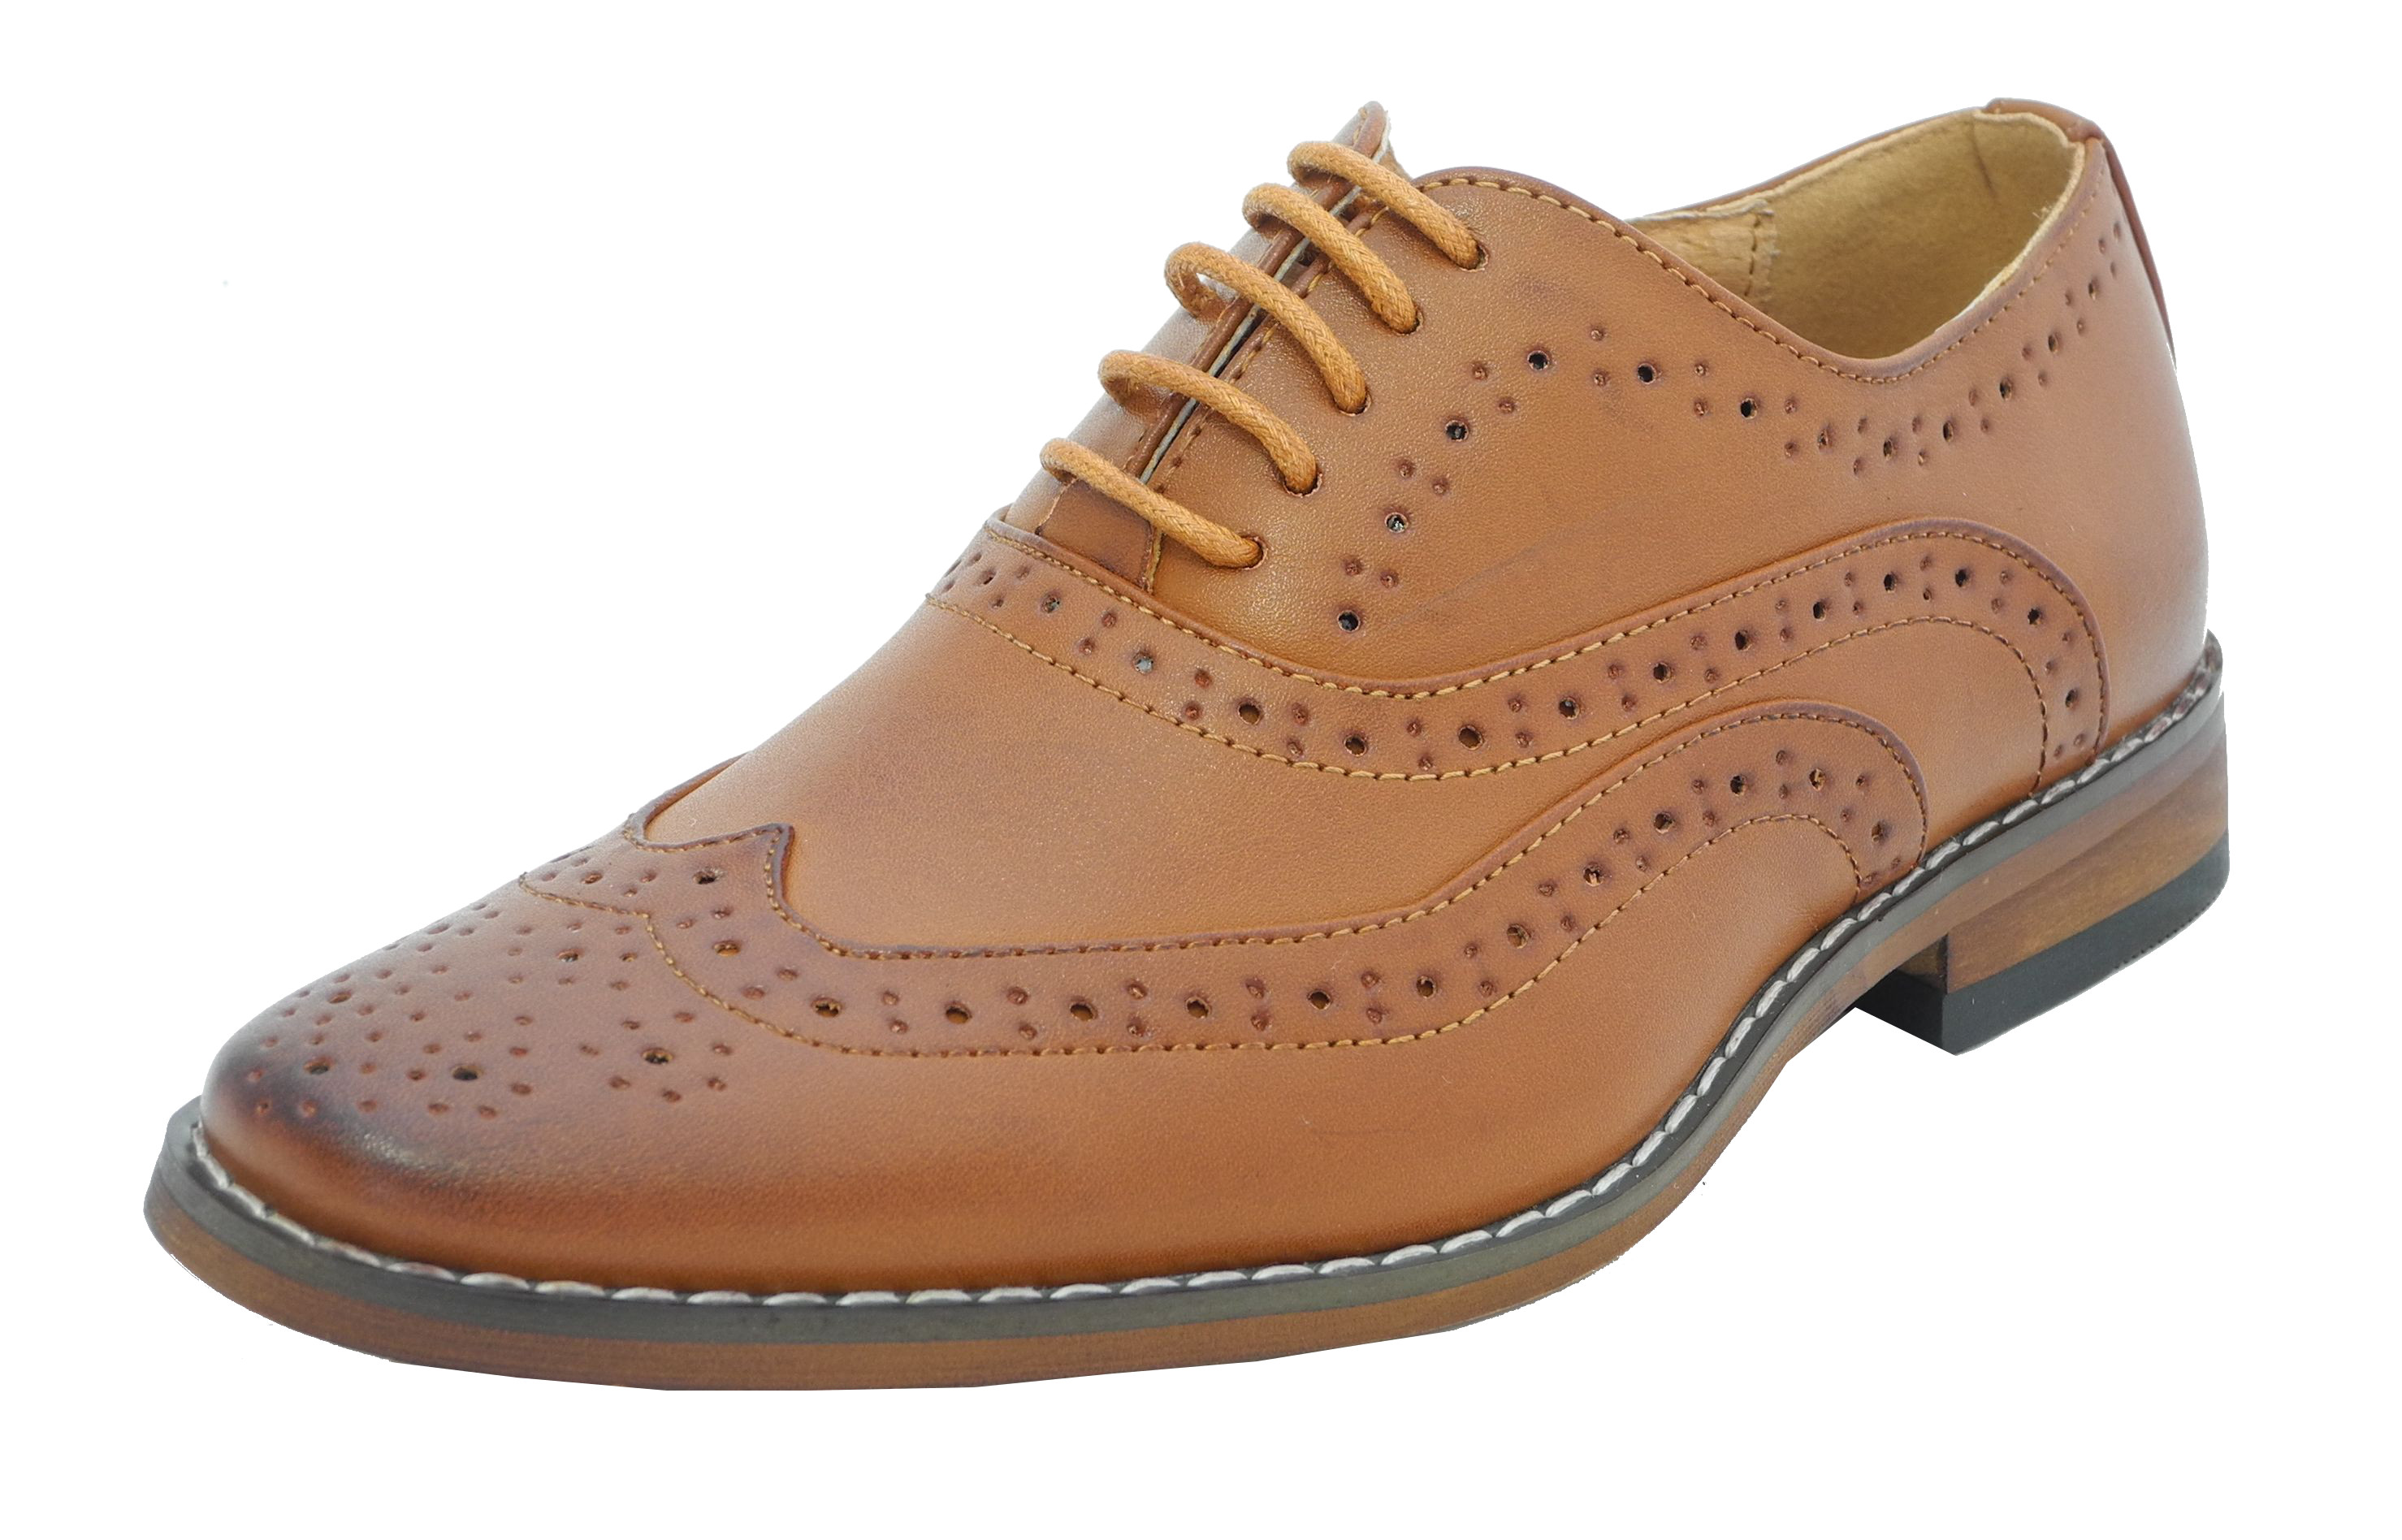 Boys Tan Leather Lined Lace Up Smart Brogues Shoes 10 11 12 13 1 2 ...